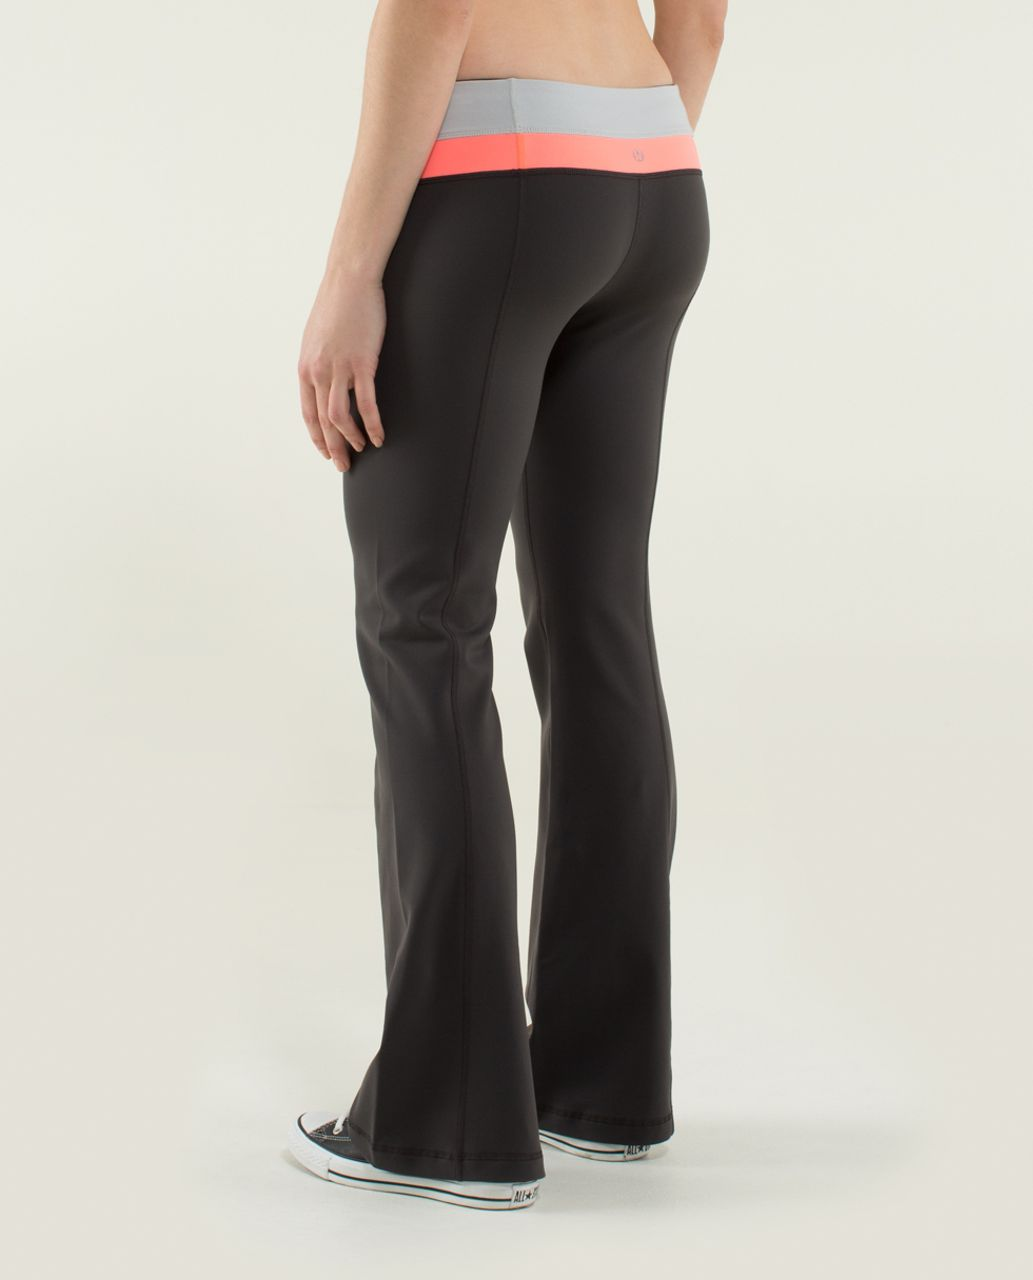 Lululemon Groove Pant (Regular) *Full-On Luon - Soot / Silver Spoon / Very Light Flare